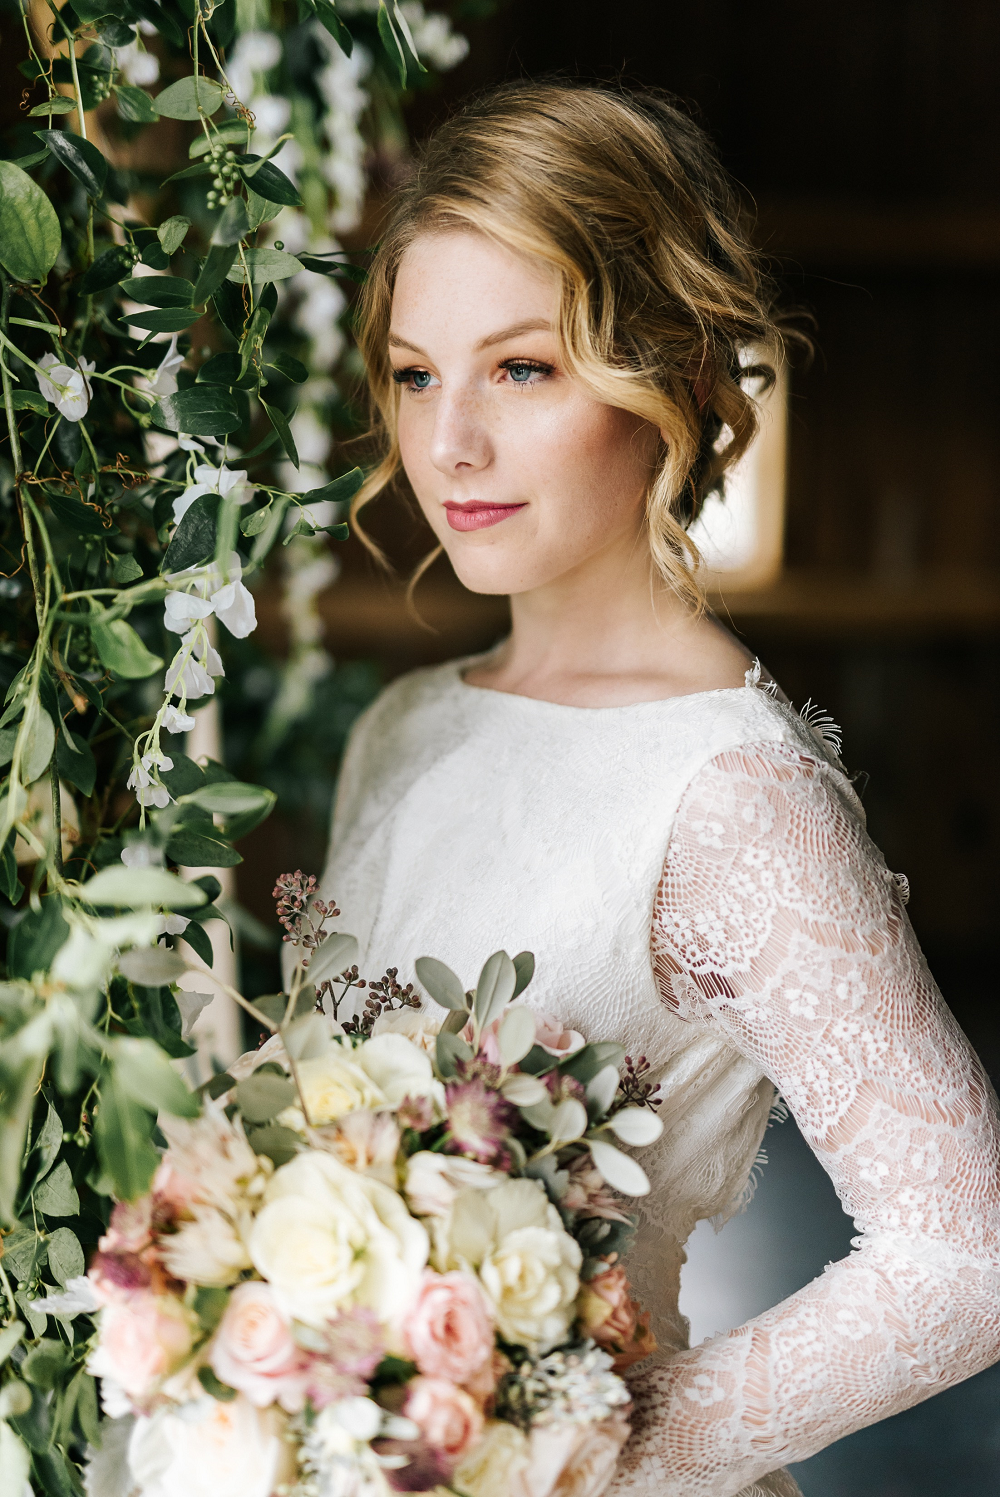 Lush Greenery Wedding Inspired Styled Shoot at Cornman Farms Bridal Portrait